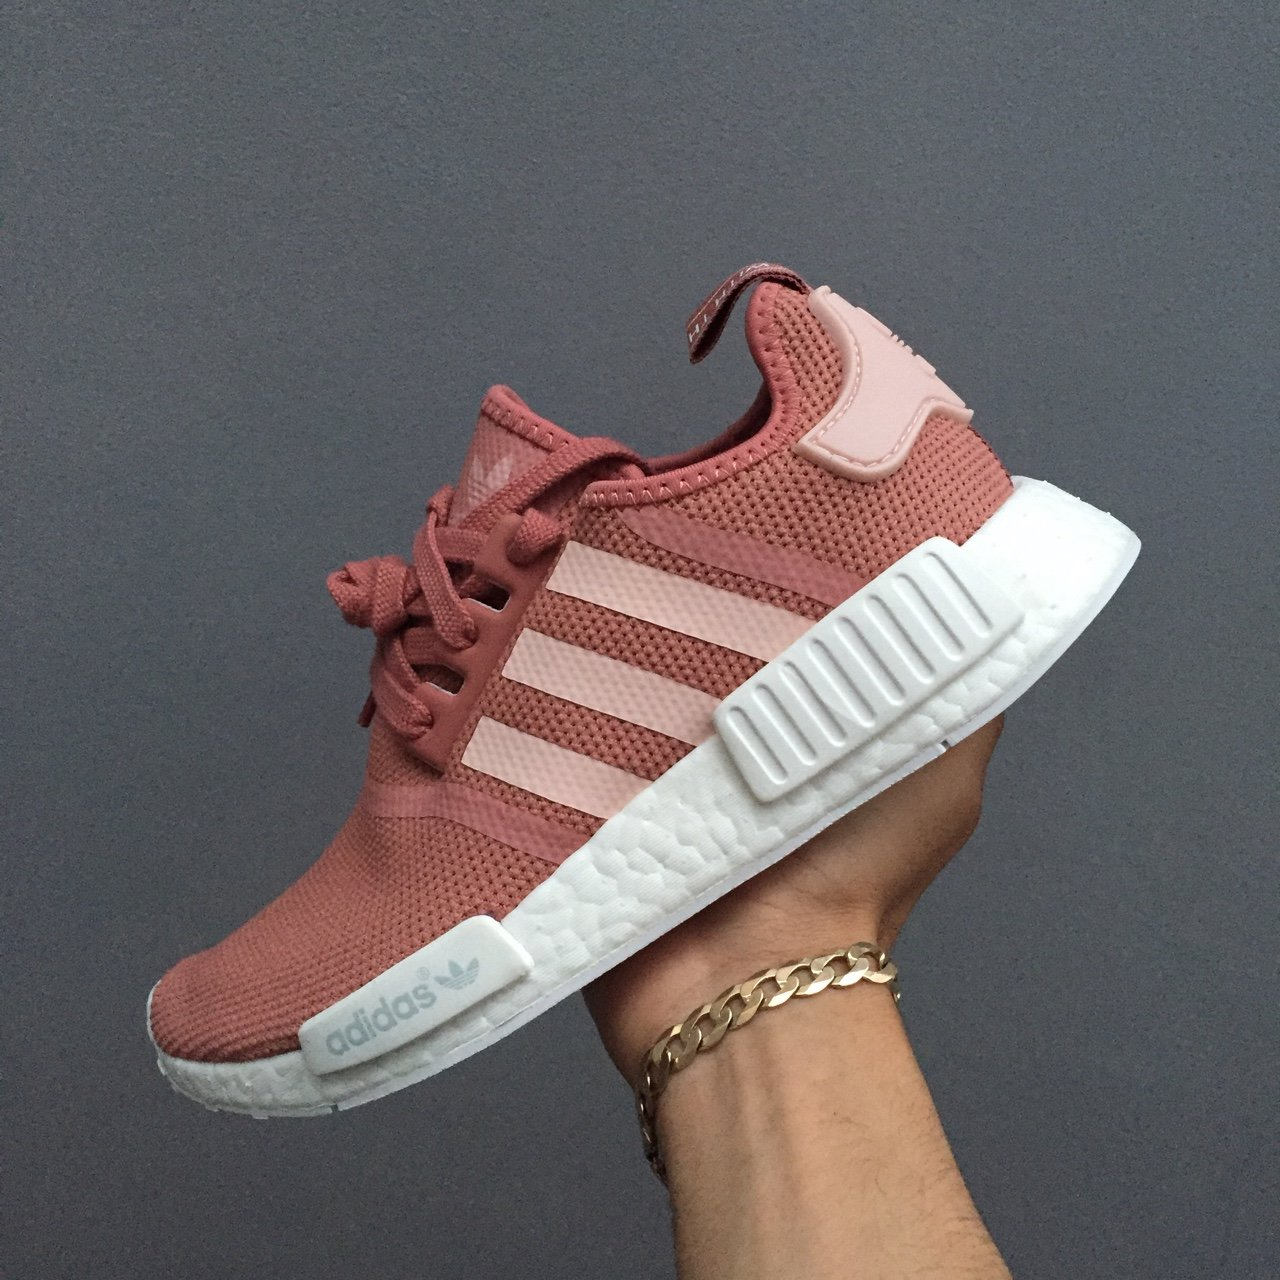 f4f8fab7bbb Adidas NMD Raw pink Restock. Brand new with box ONLY the is - Depop